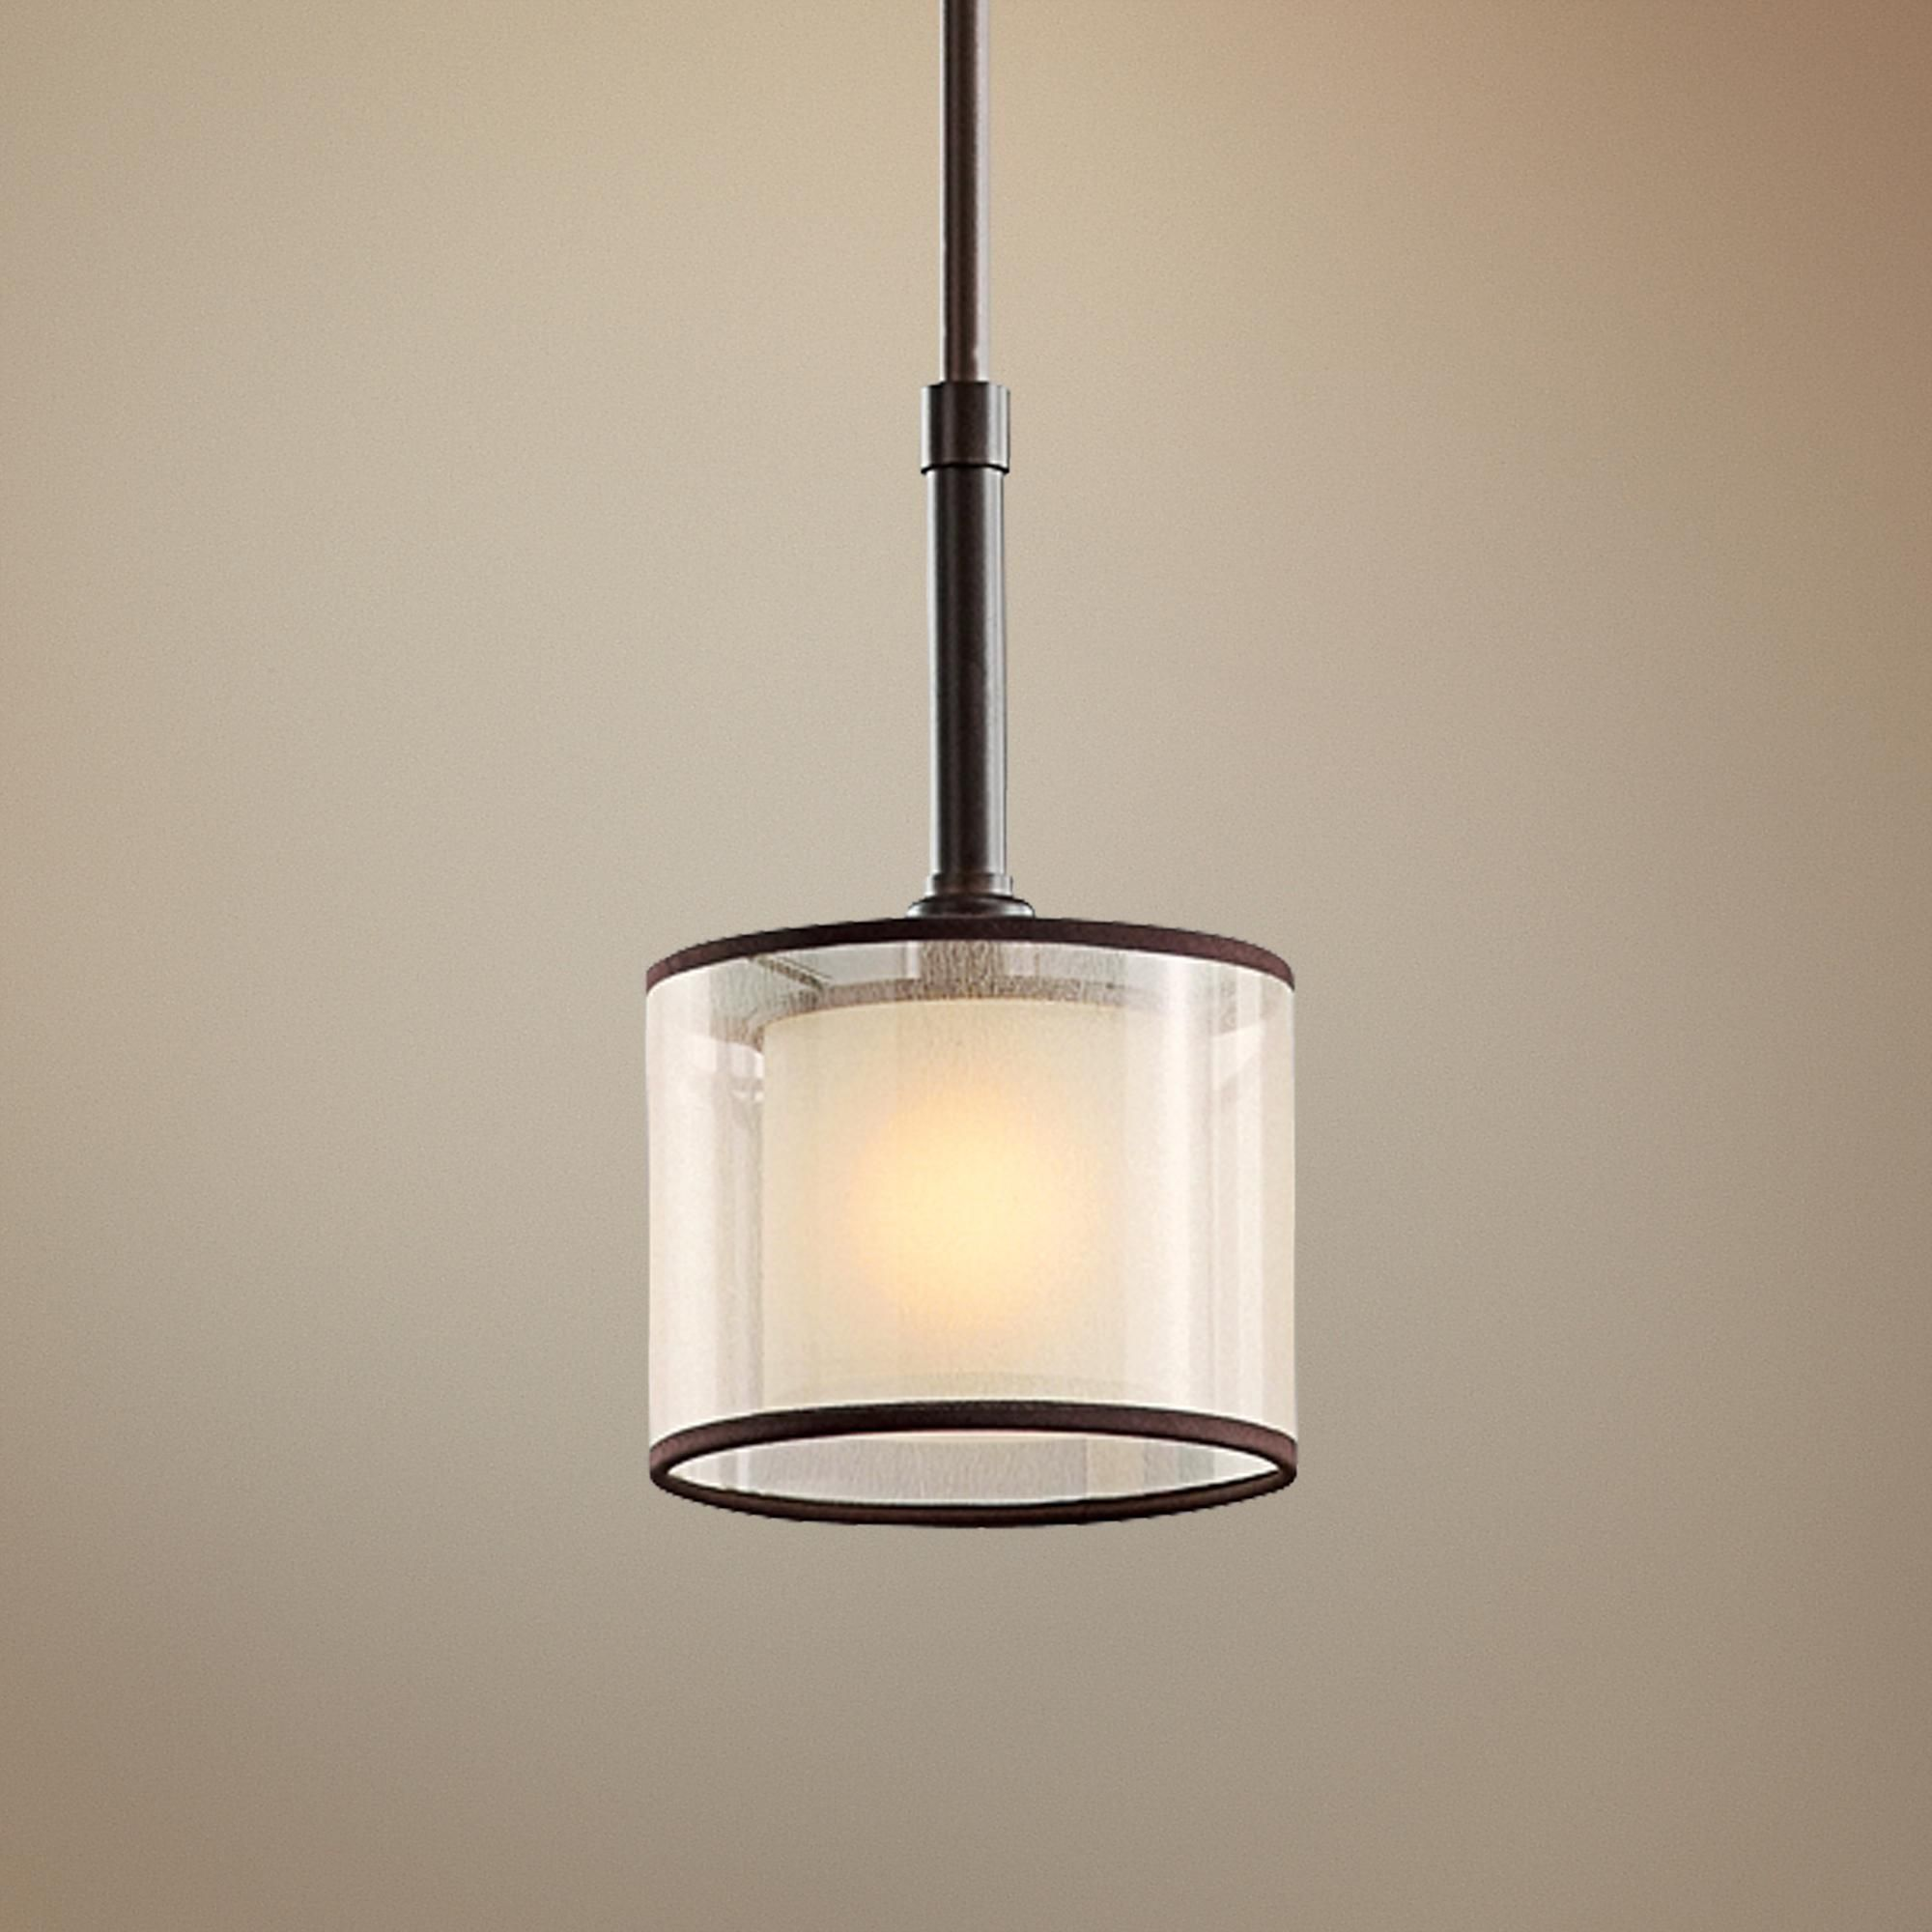 Kichler lacey collection mini pendant light style n mini